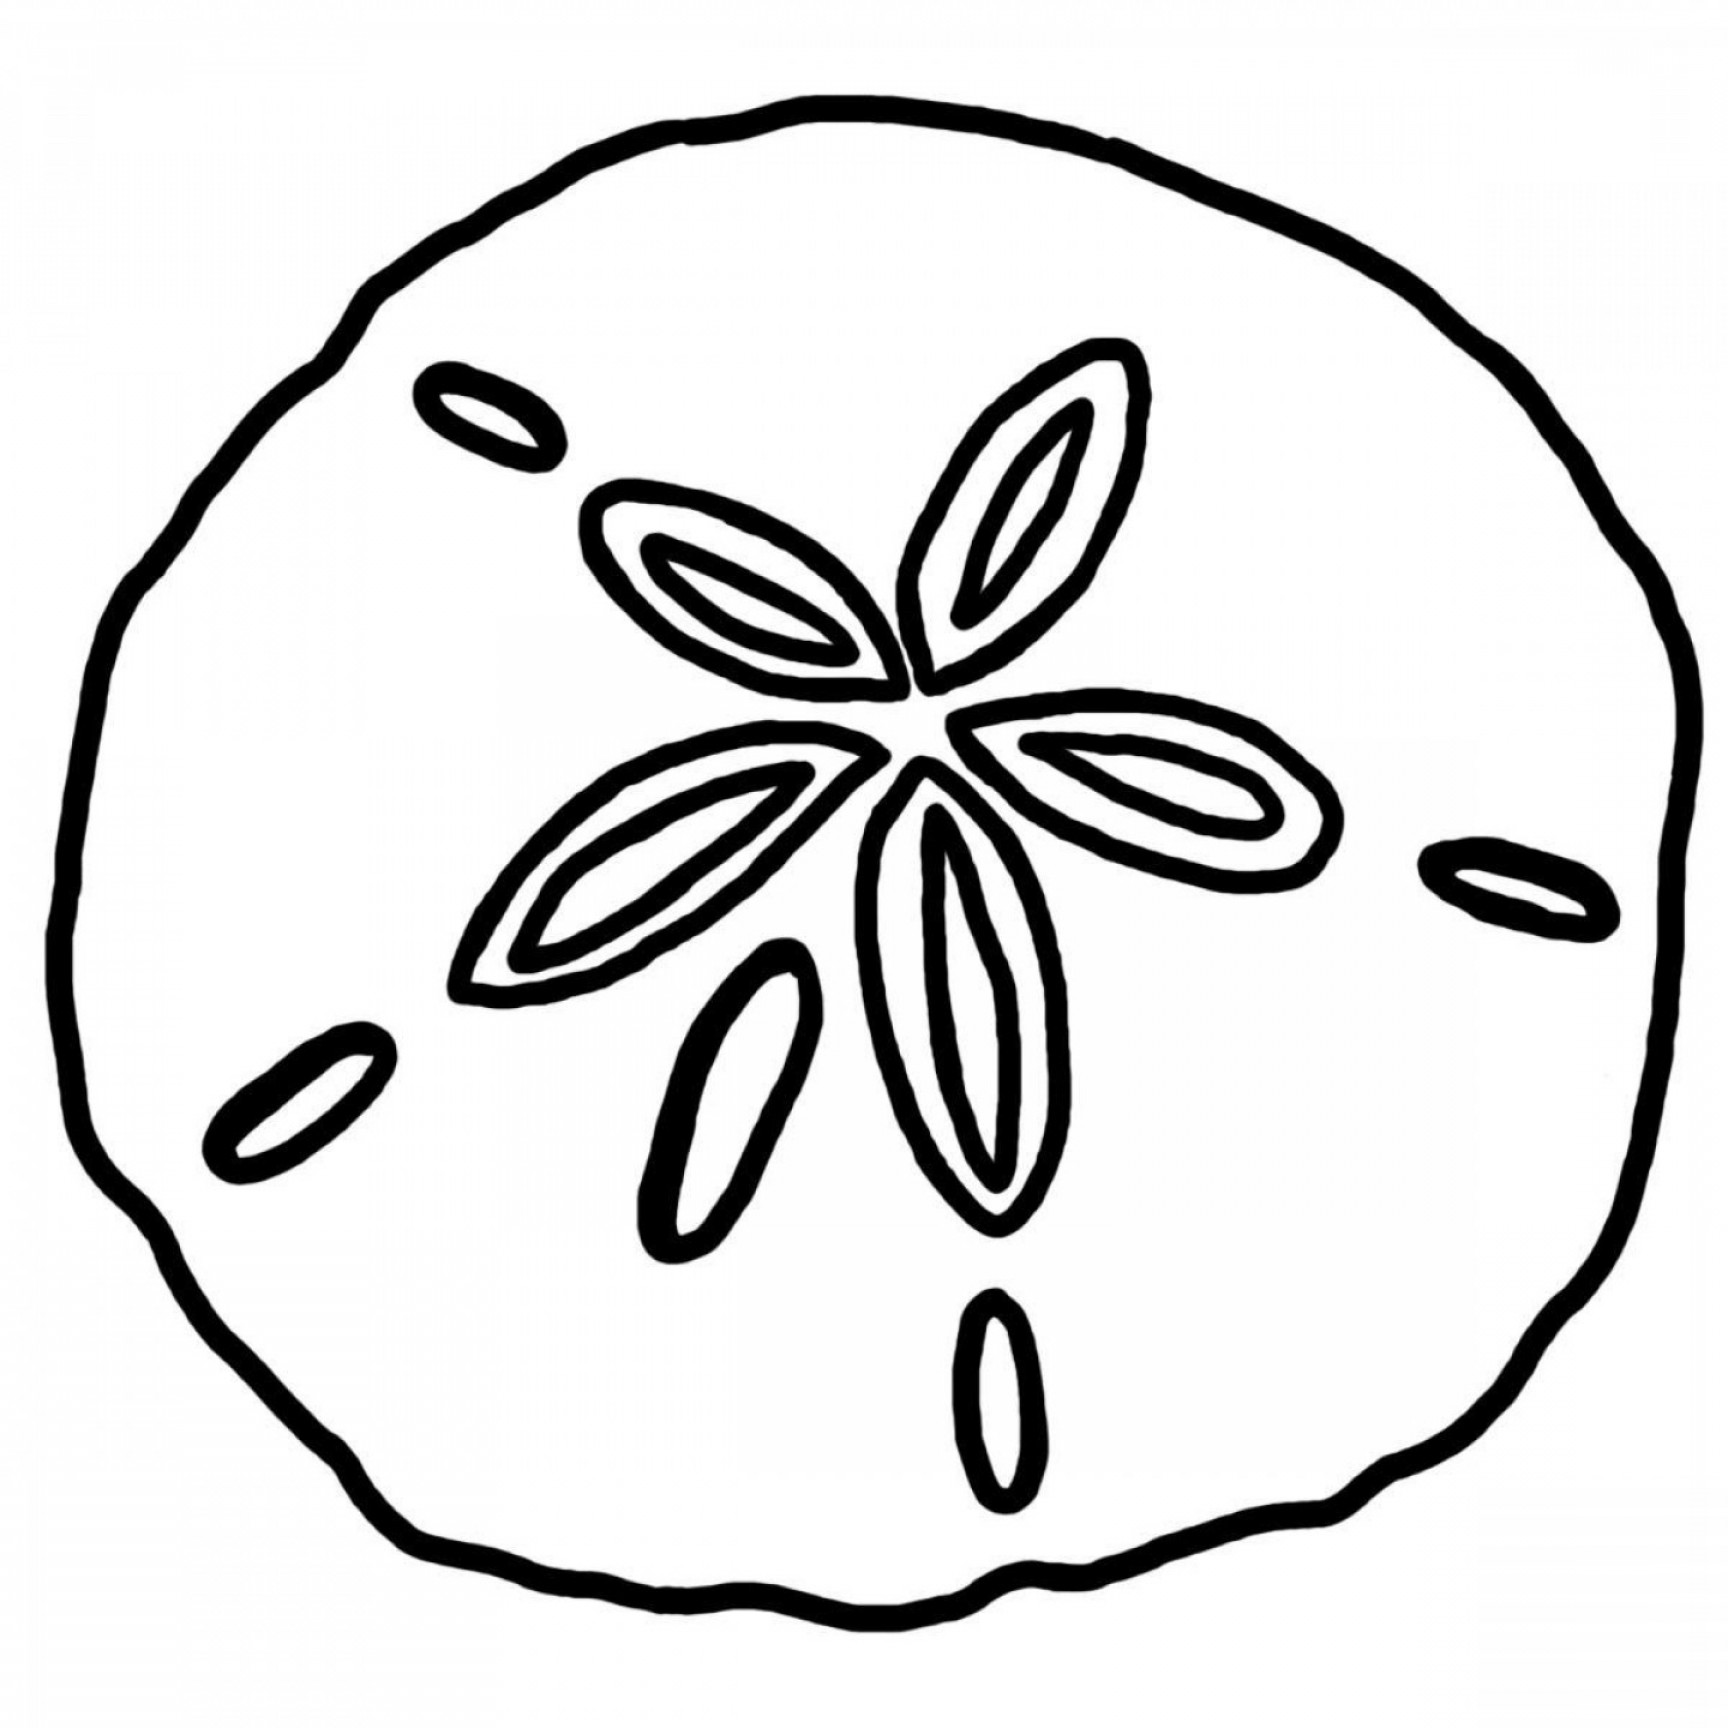 Sand Dollar Silhouette Vector: Sweetlooking Sand Dollar Clipart Cute Latest Best Clip Art Collection Holiday